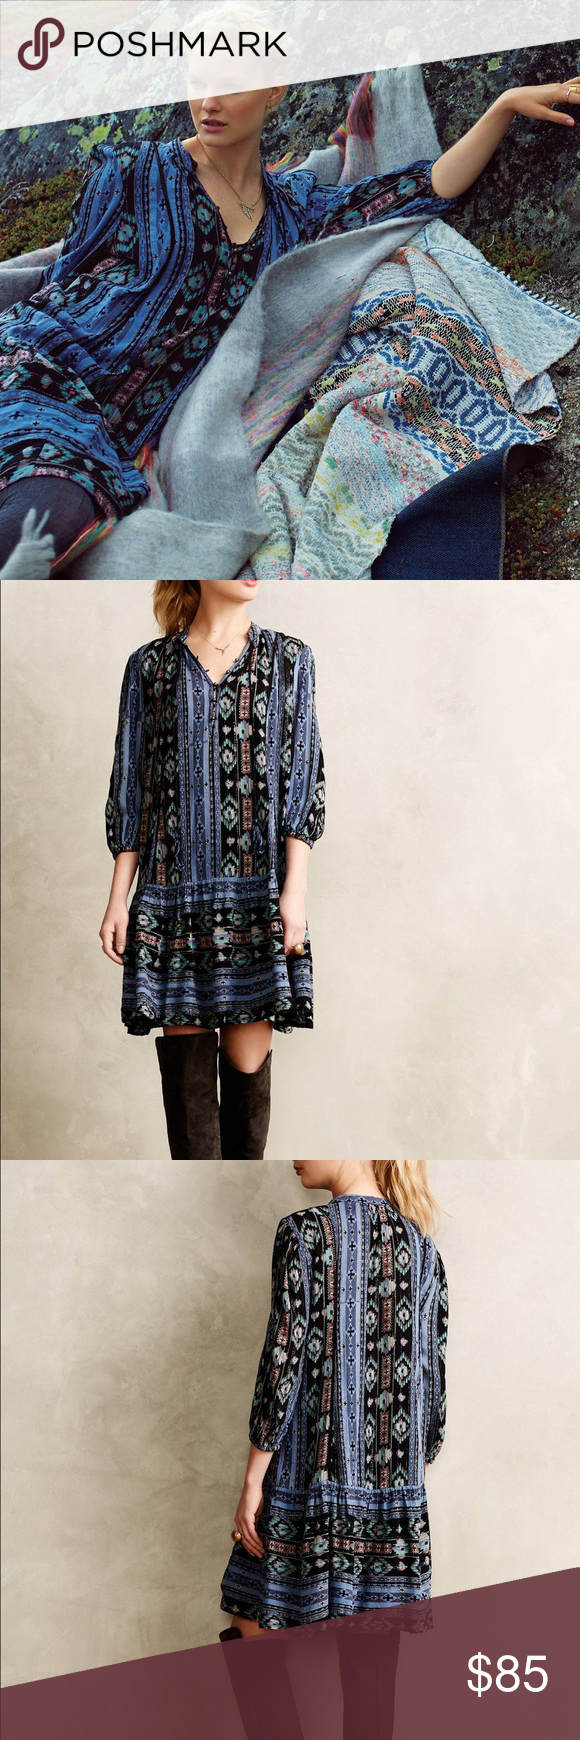 a160bcaebe7 Anthropologie Holding Horses Winter Moon Tunic Top Anthropologie Holding  Horses Winter Moon Loose Fitting Tunic Dress, 3/4 sleeves with elastic hem.